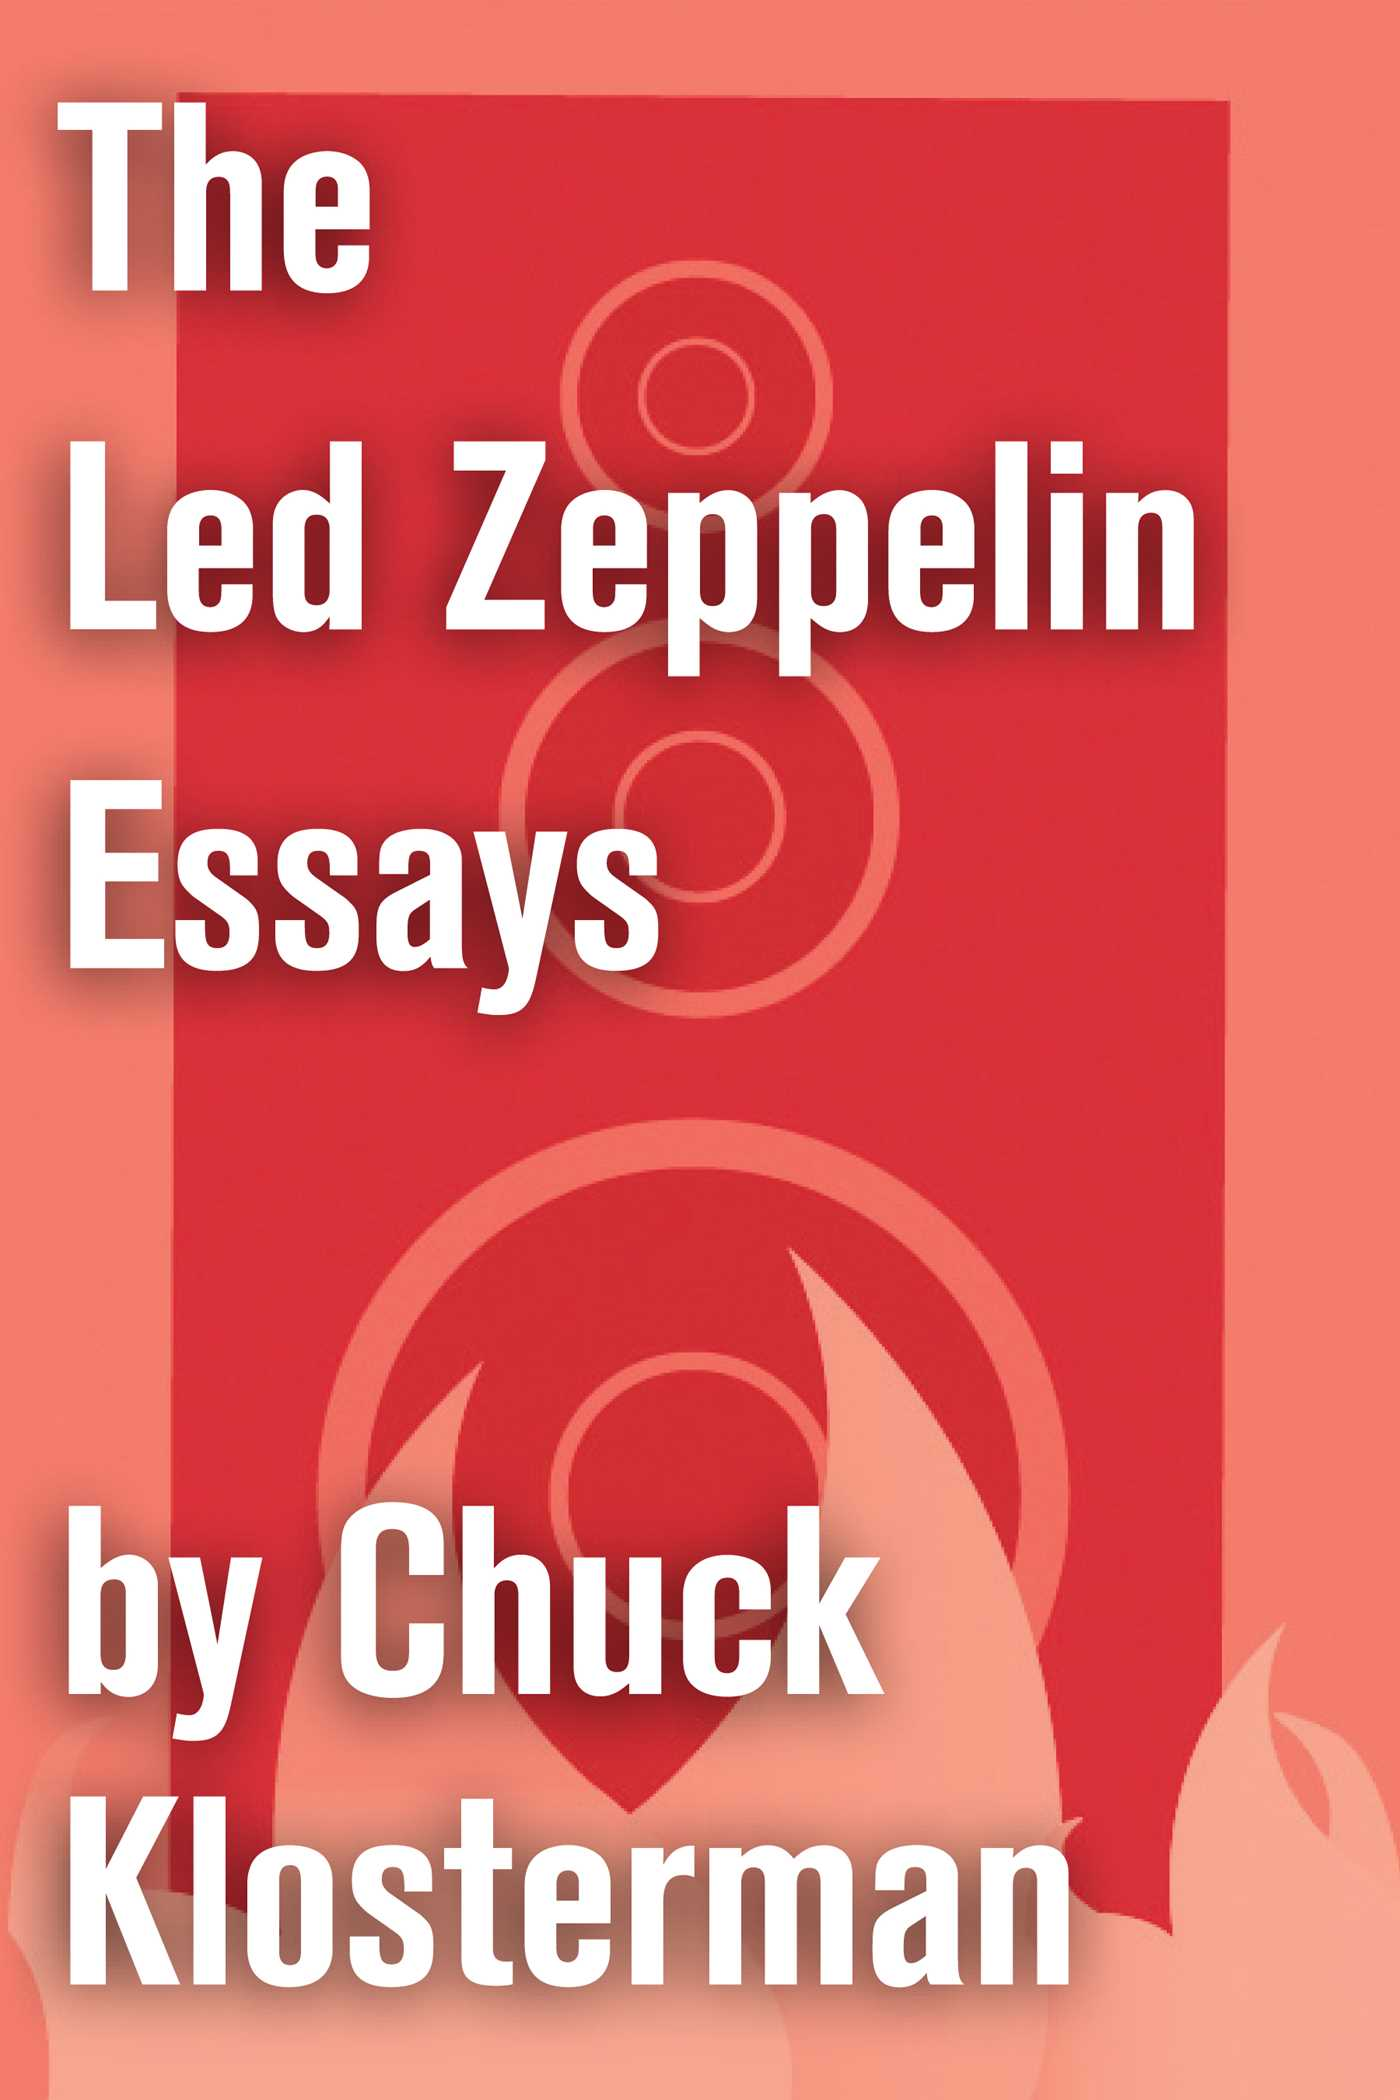 The led zeppelin essays 9781451624533 hr